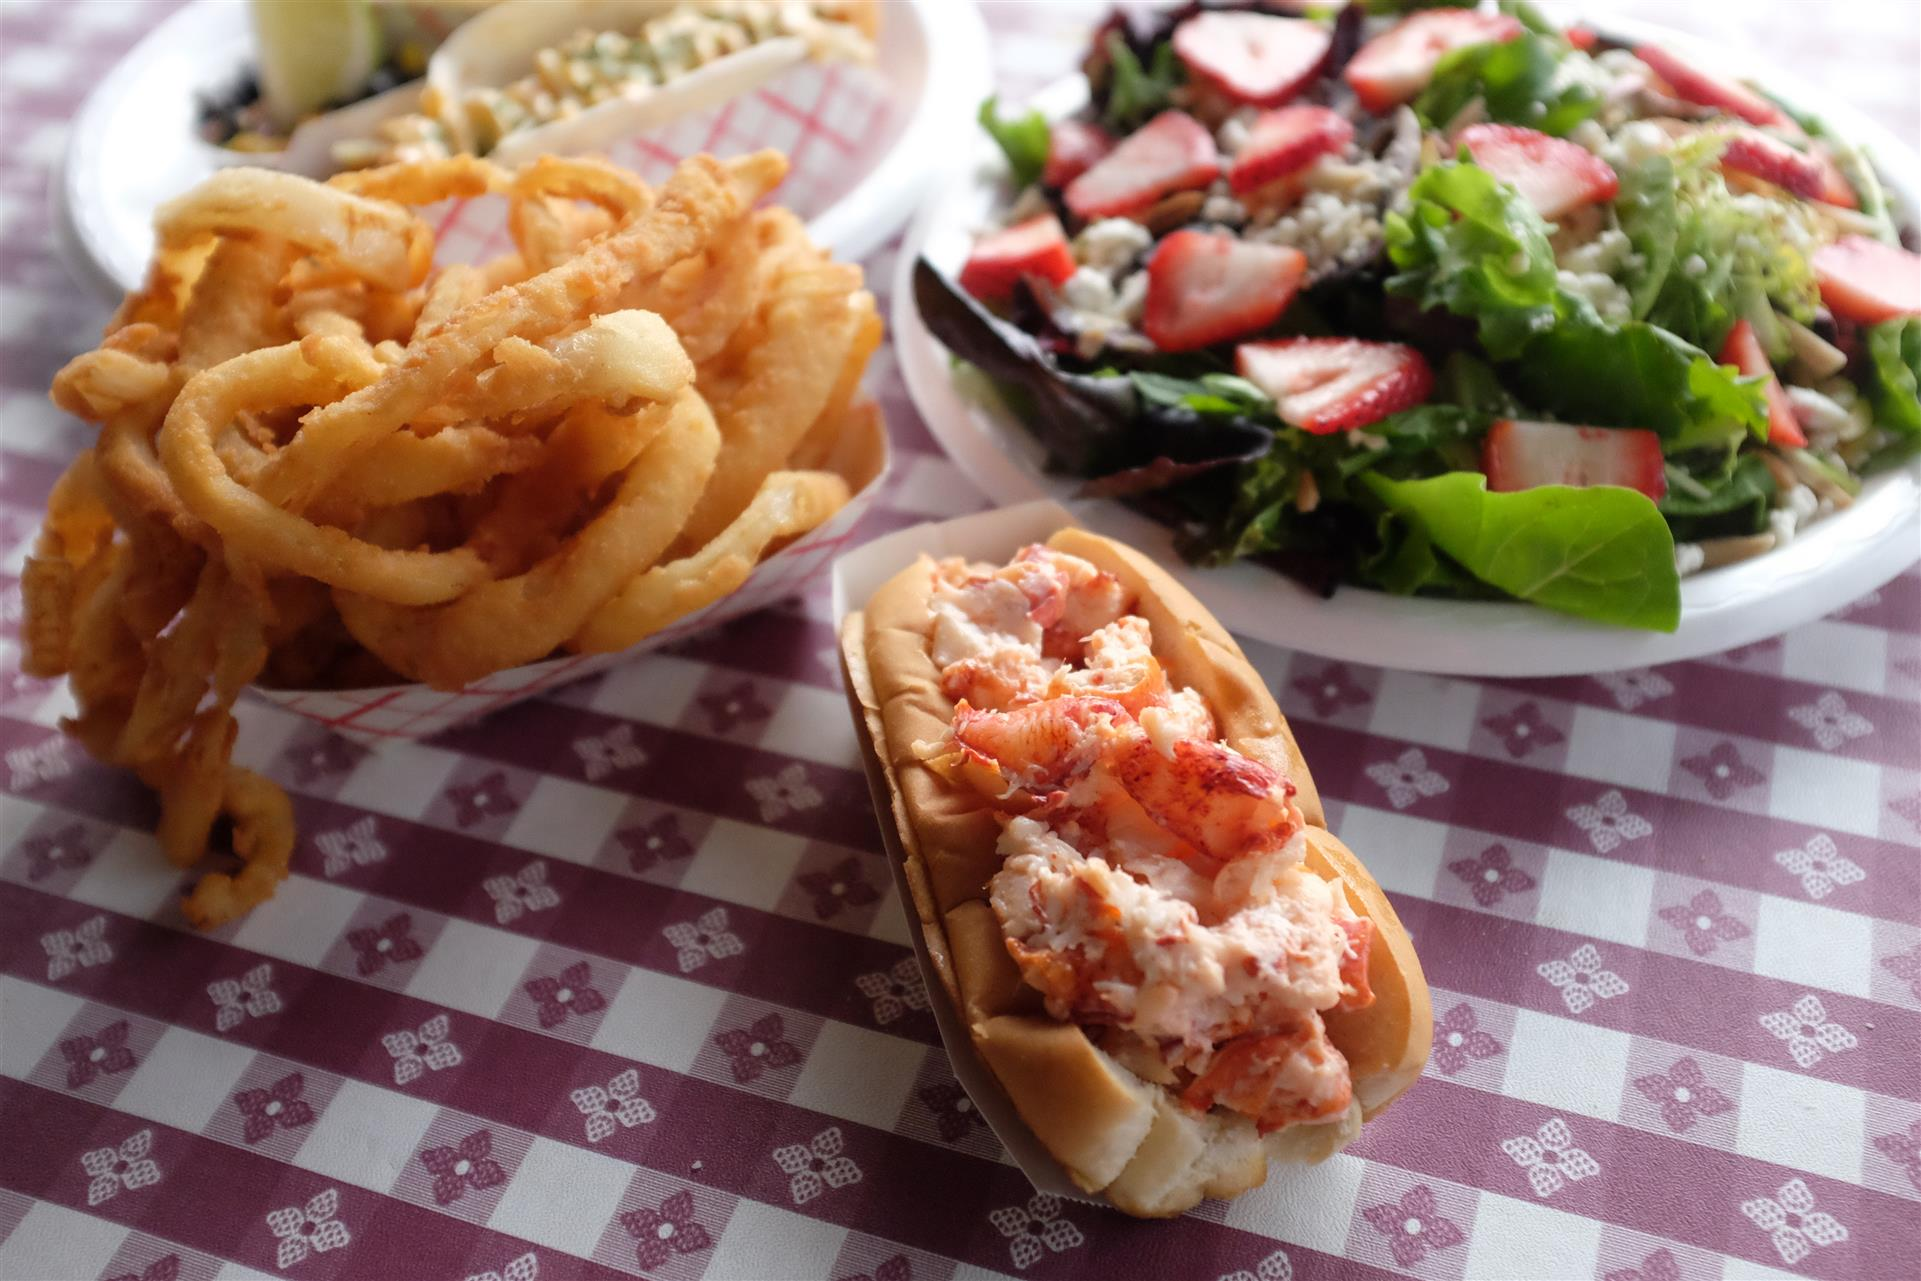 lobster roll with a side of onion rings and a strawberry salad